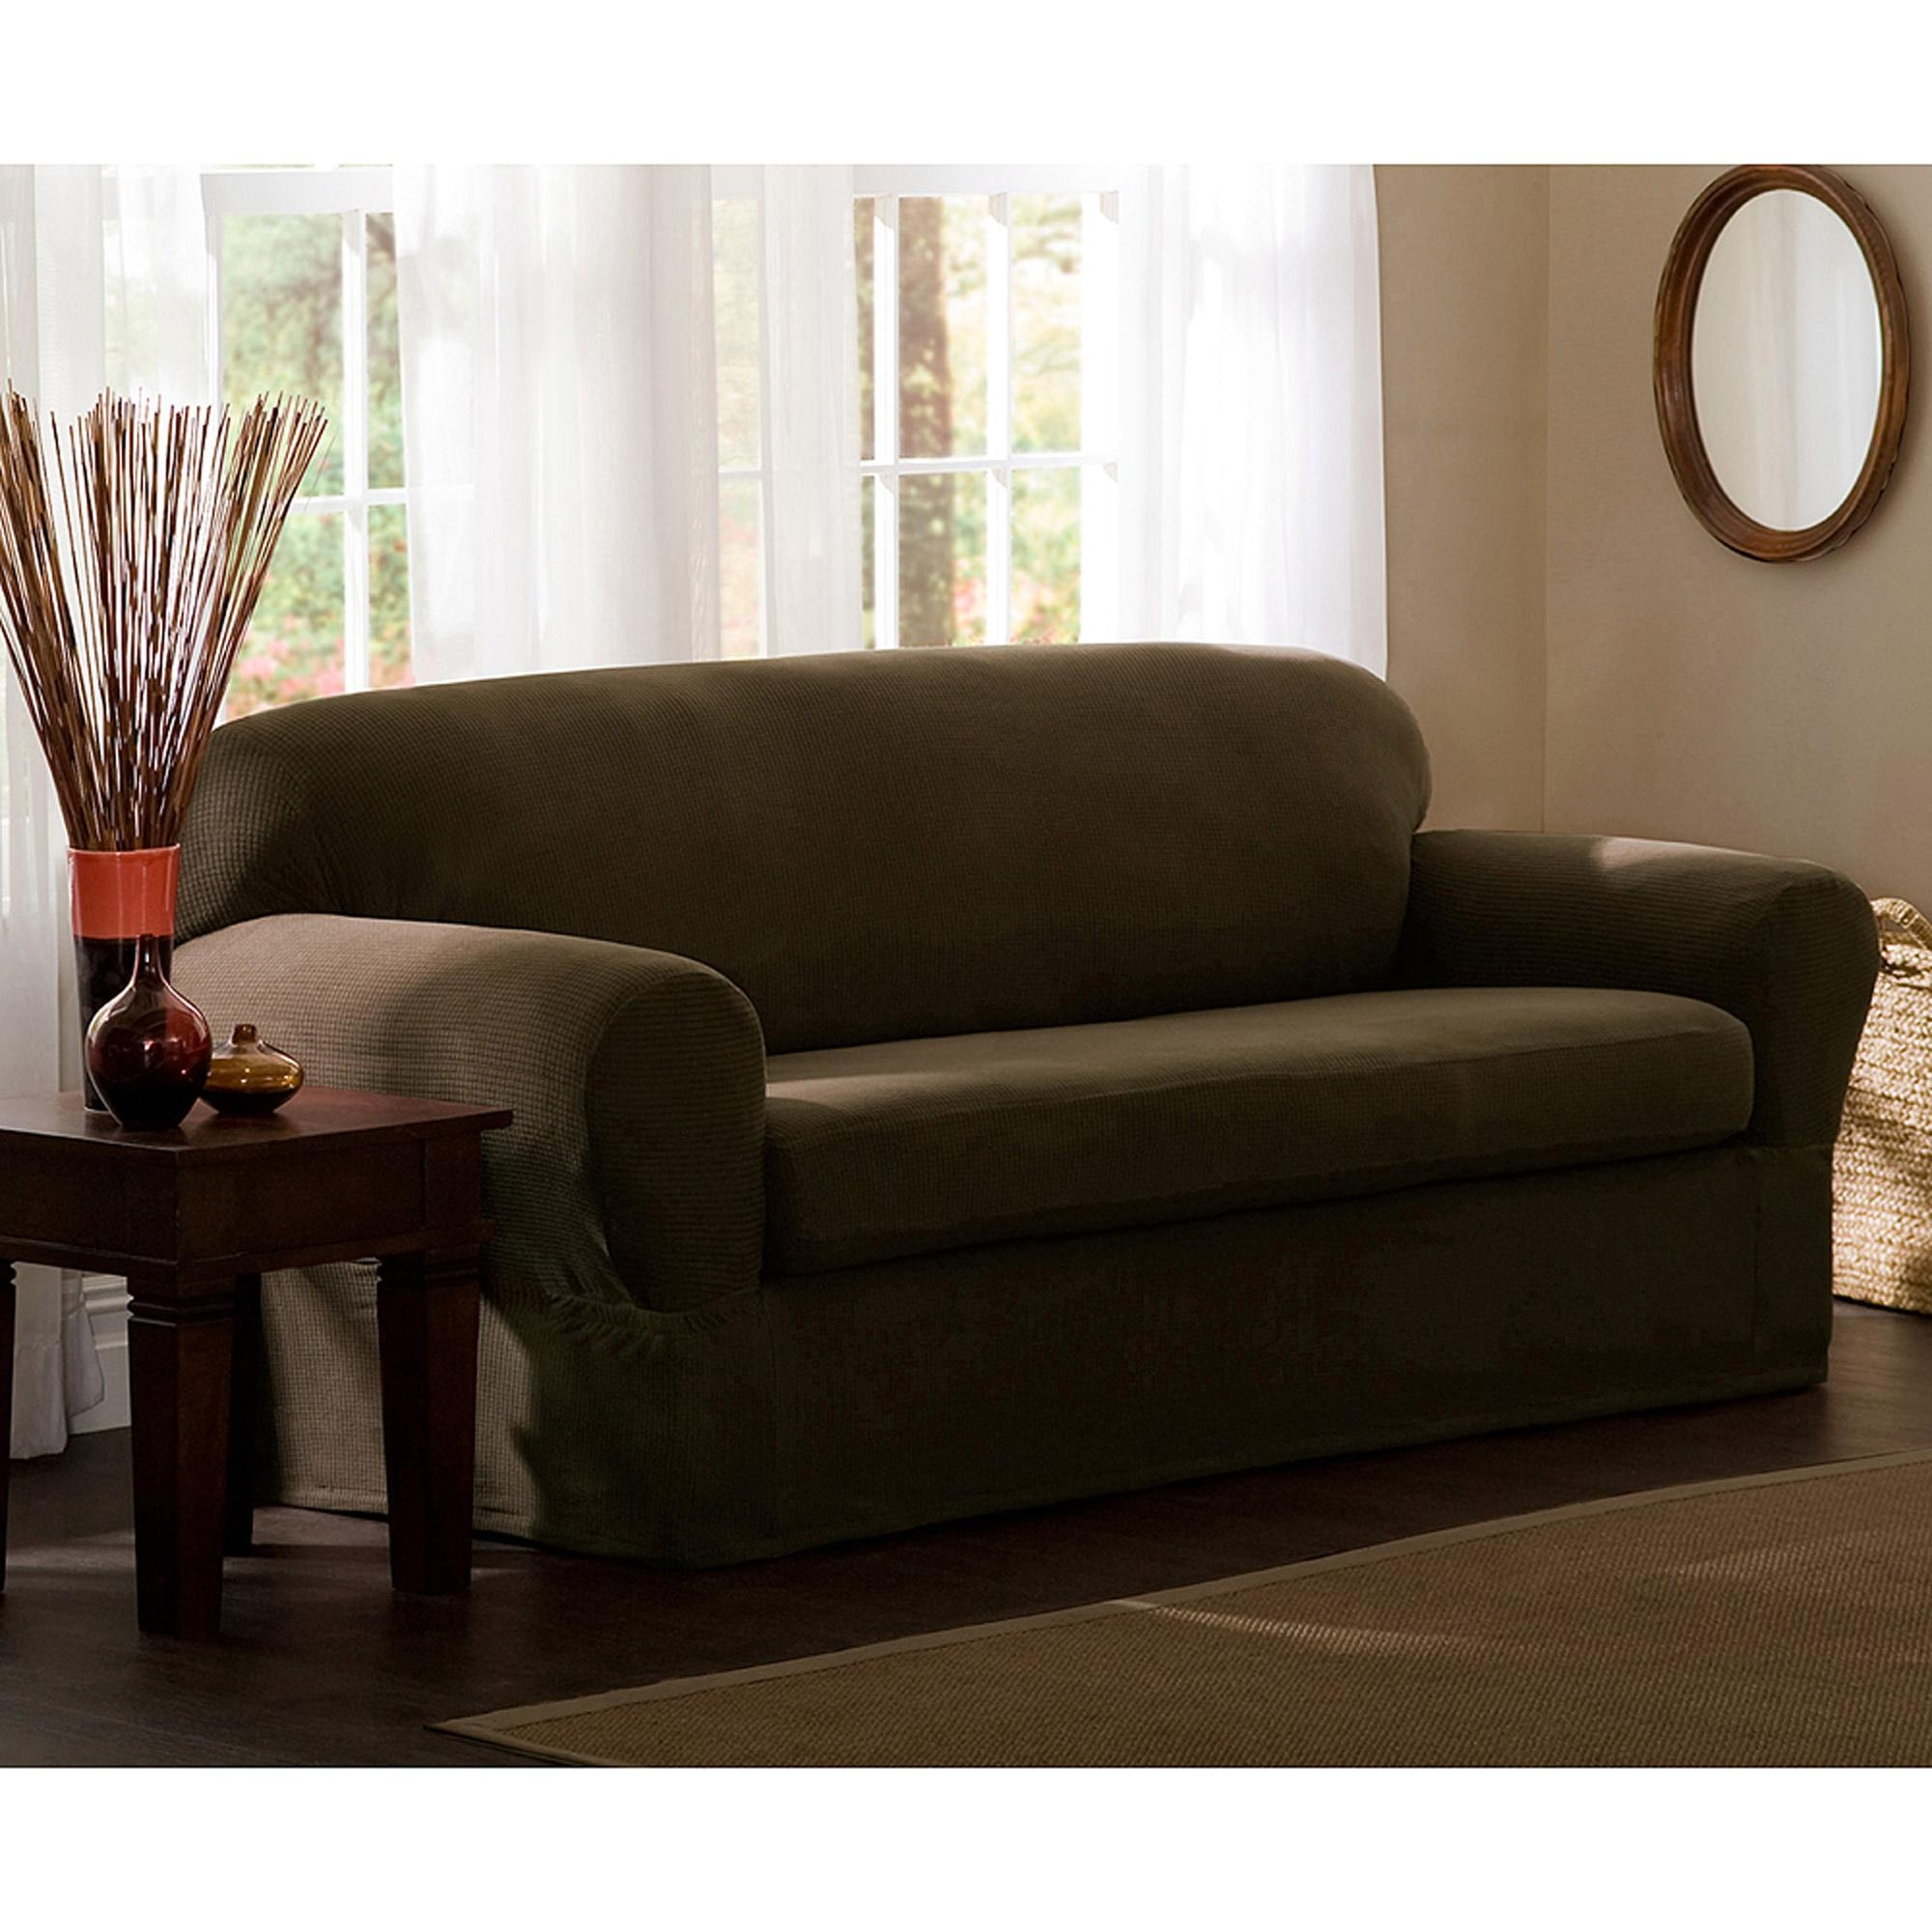 Mainstays Faux Suede Loveseat Slipcover – Walmart For Sofa And Loveseat Covers (View 3 of 20)